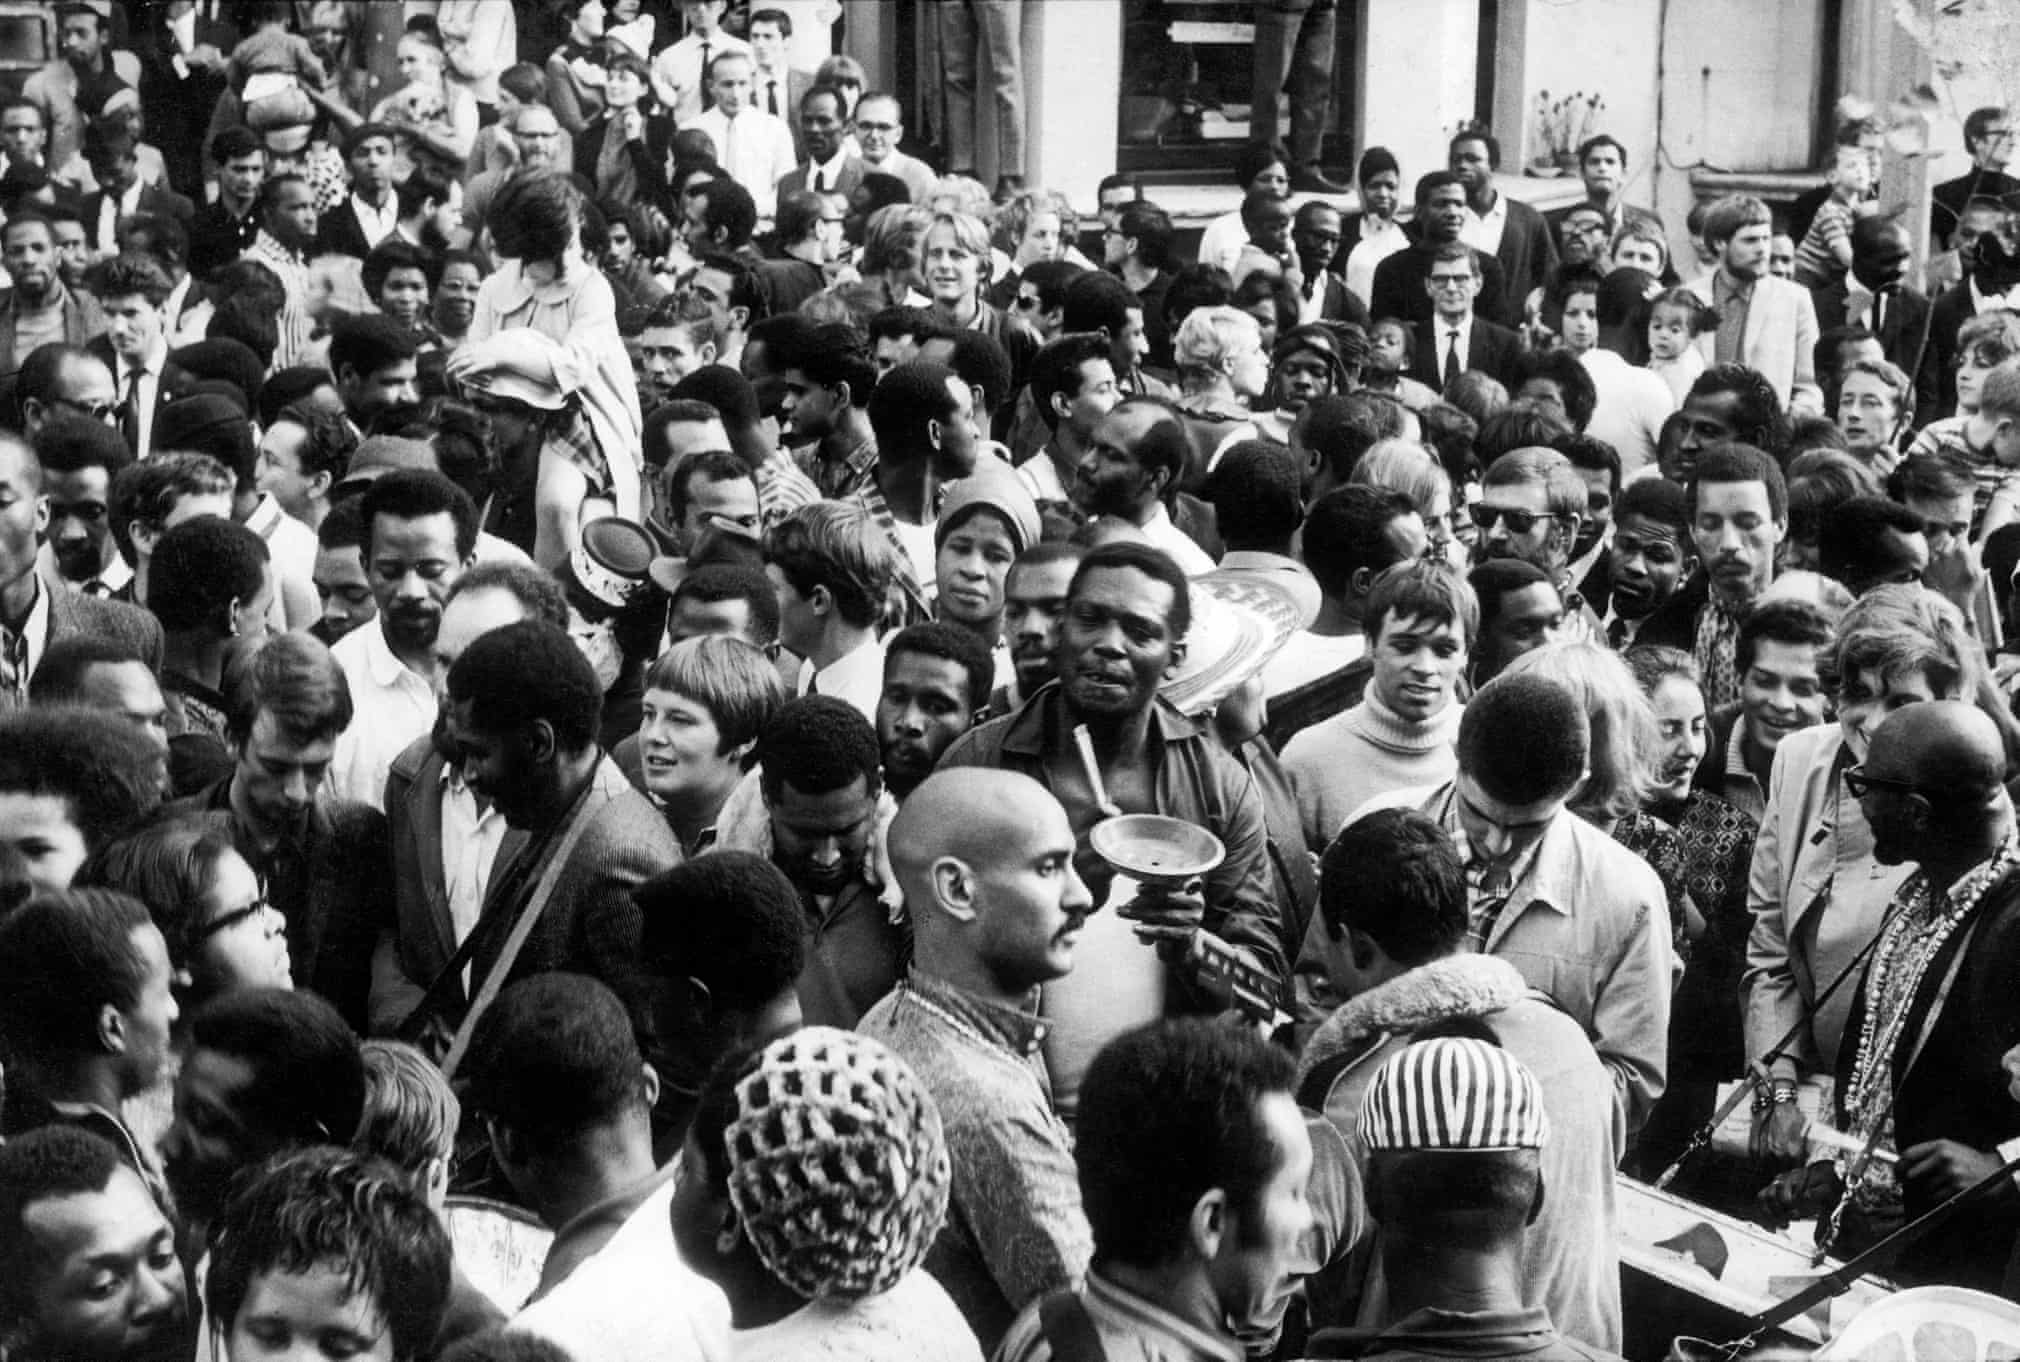 1968 . Crowds fill the streets at the Notting Hill carnival during the August bank holiday  Photograph: Charlie Phillips/Getty Images